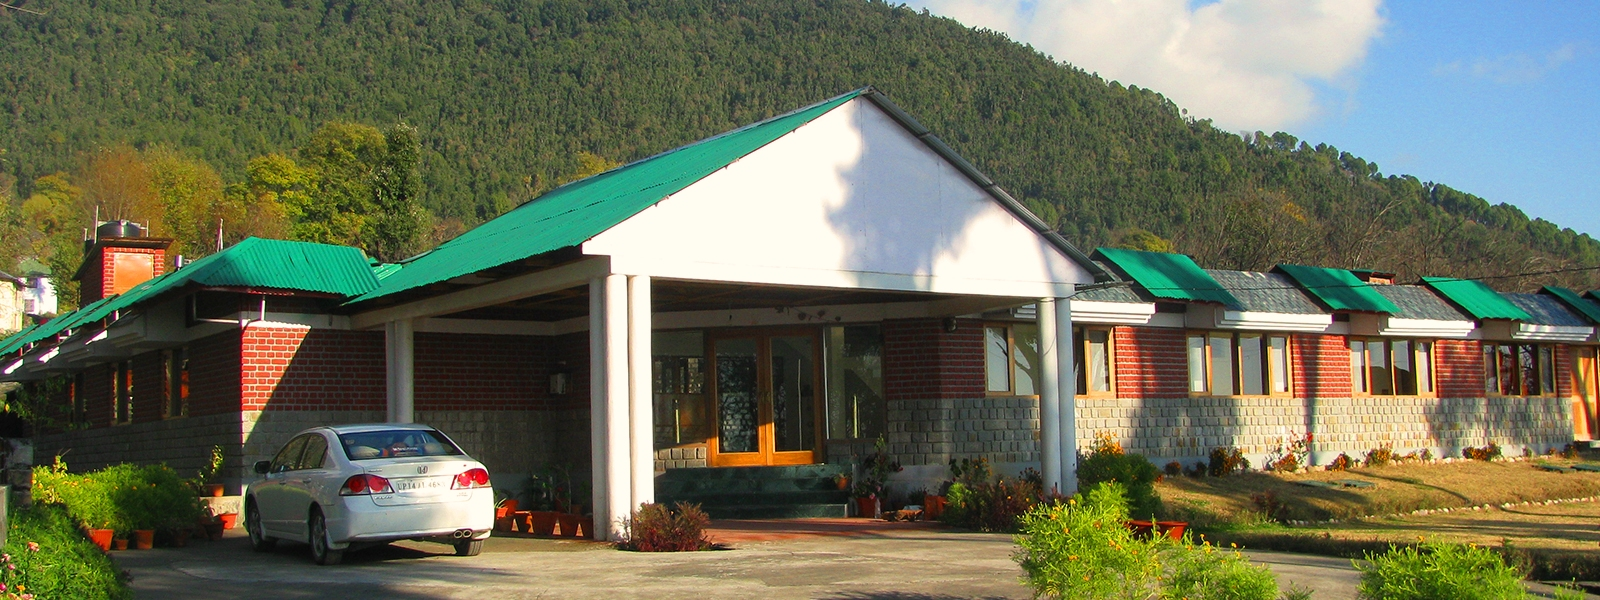 bene-resort-palampur-slider-1